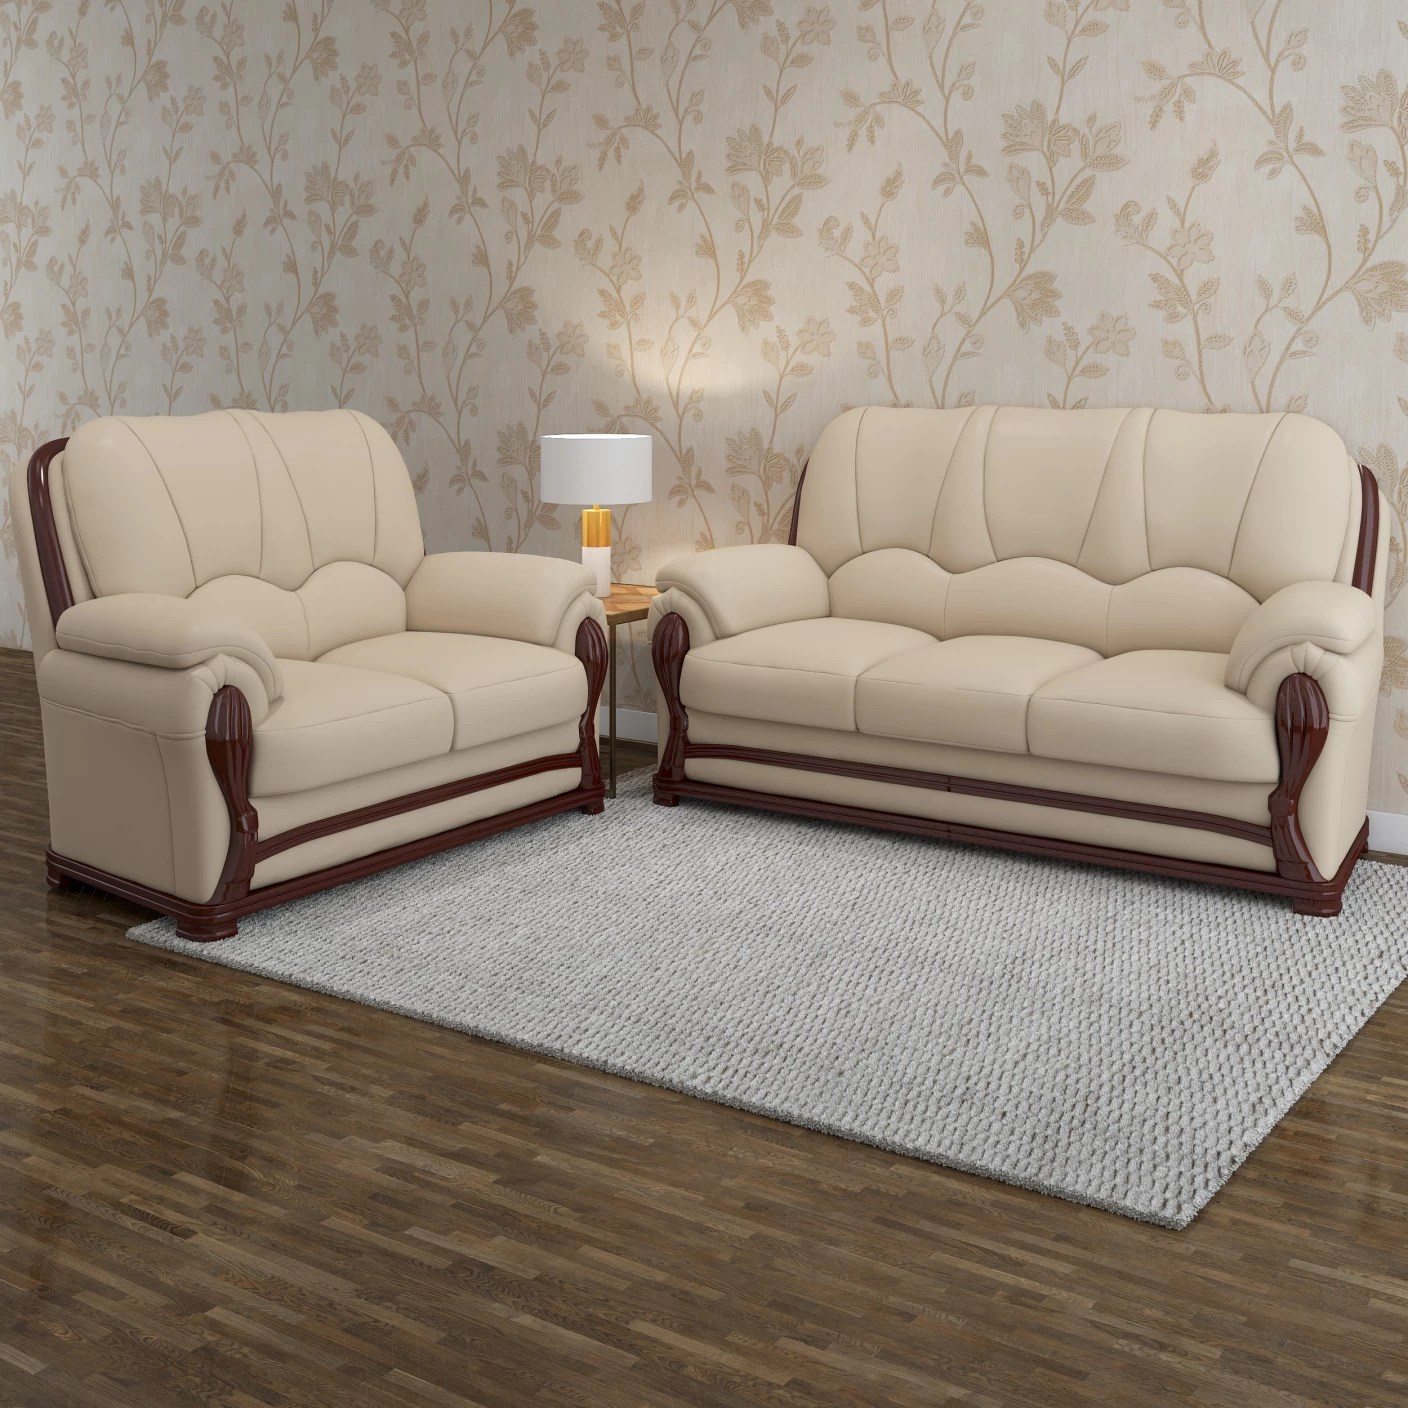 Sofa Set Price In Quetta Vintage Ivoria Fabric 3 43 2 Mahogany Sofa Set Price In